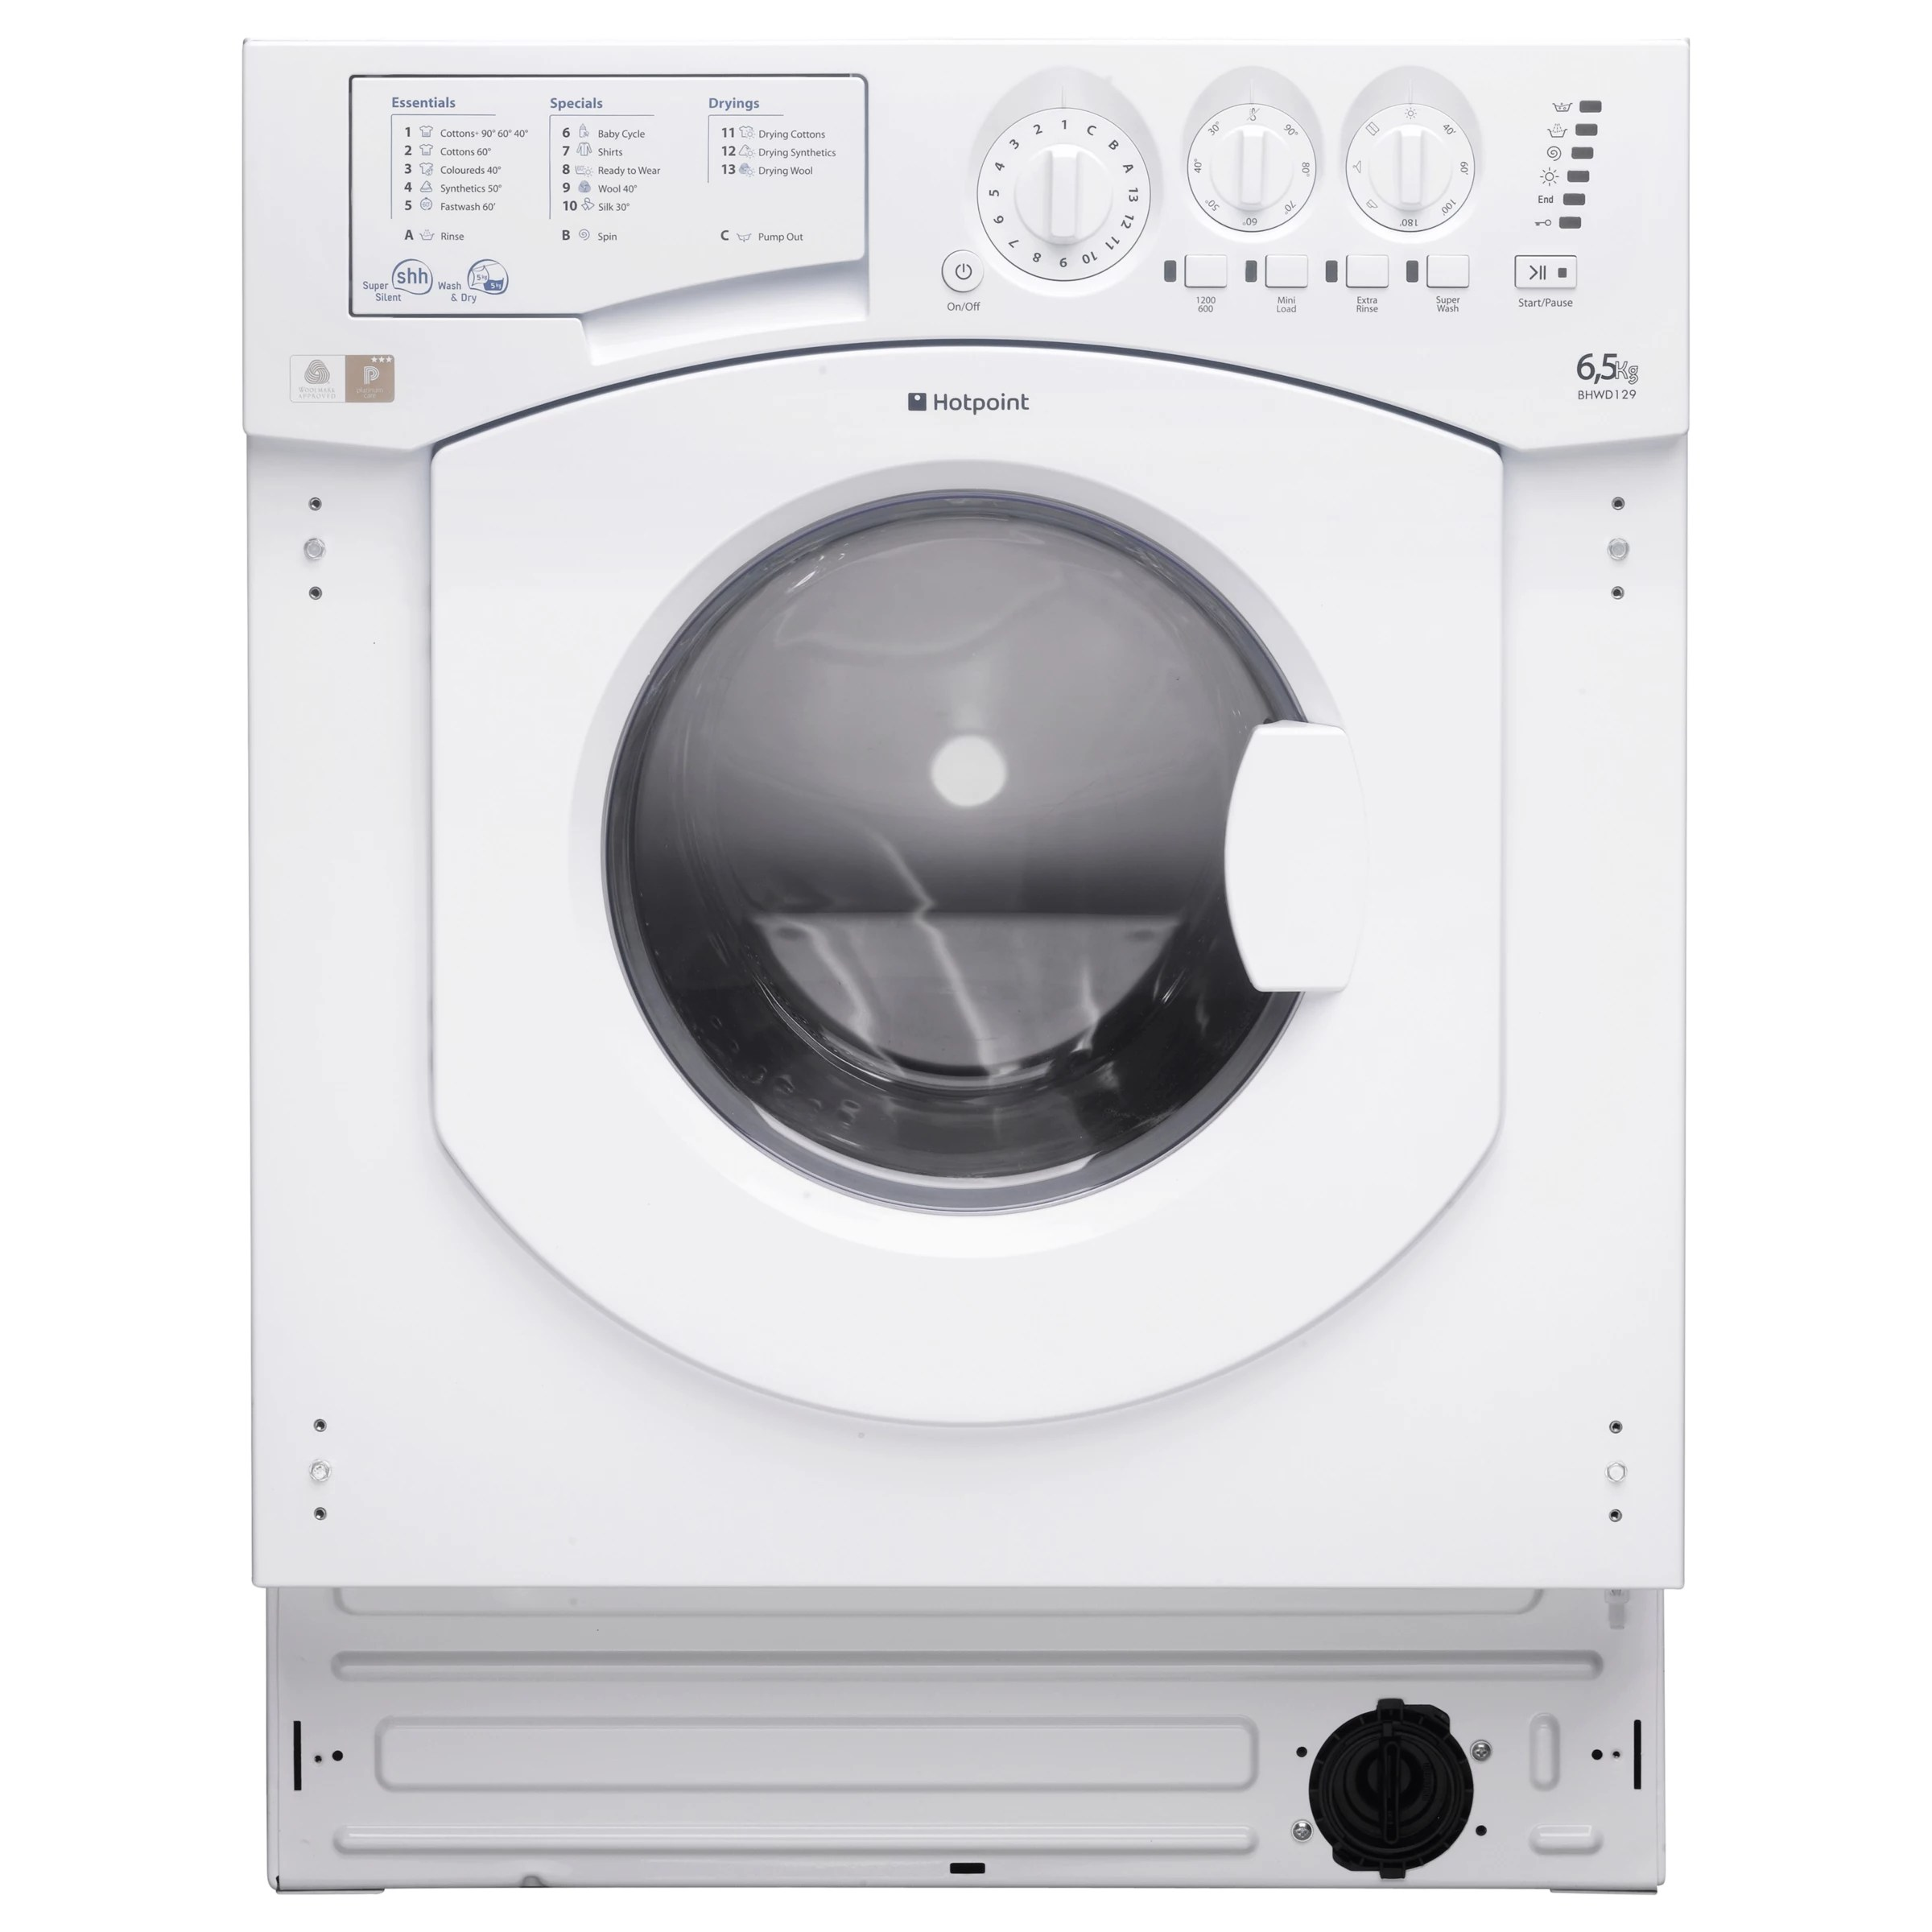 buy hotpoint bhwd129 aquarius integrated washer dryer white online at johnlewis com  [ 1440 x 1920 Pixel ]